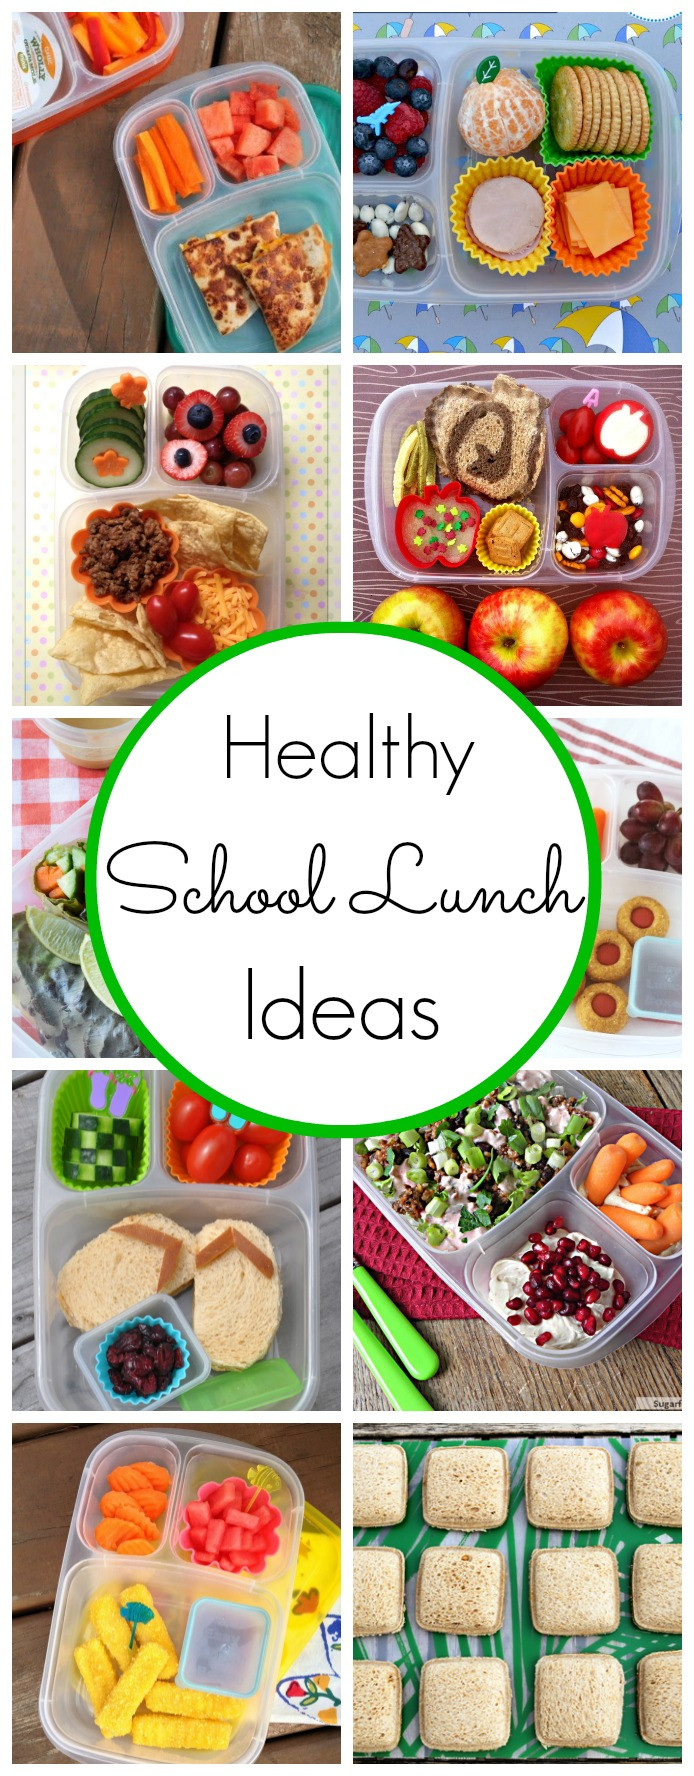 Healthy Lunches To Bring To School  Healthy School Lunch Ideas